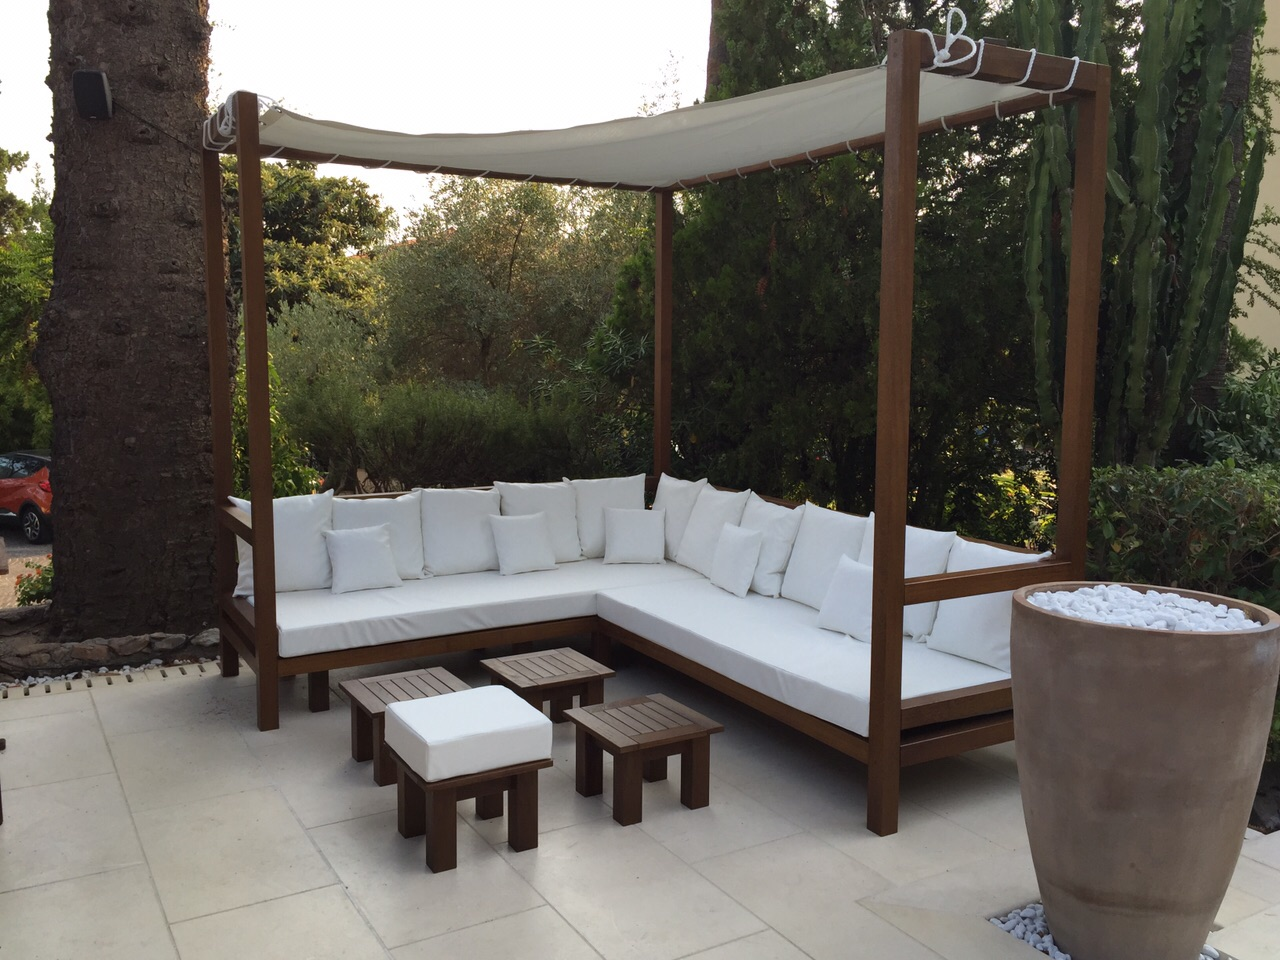 Camas chill out o camas balinesas incofusta fabrica de for Decoracion jardin chill out